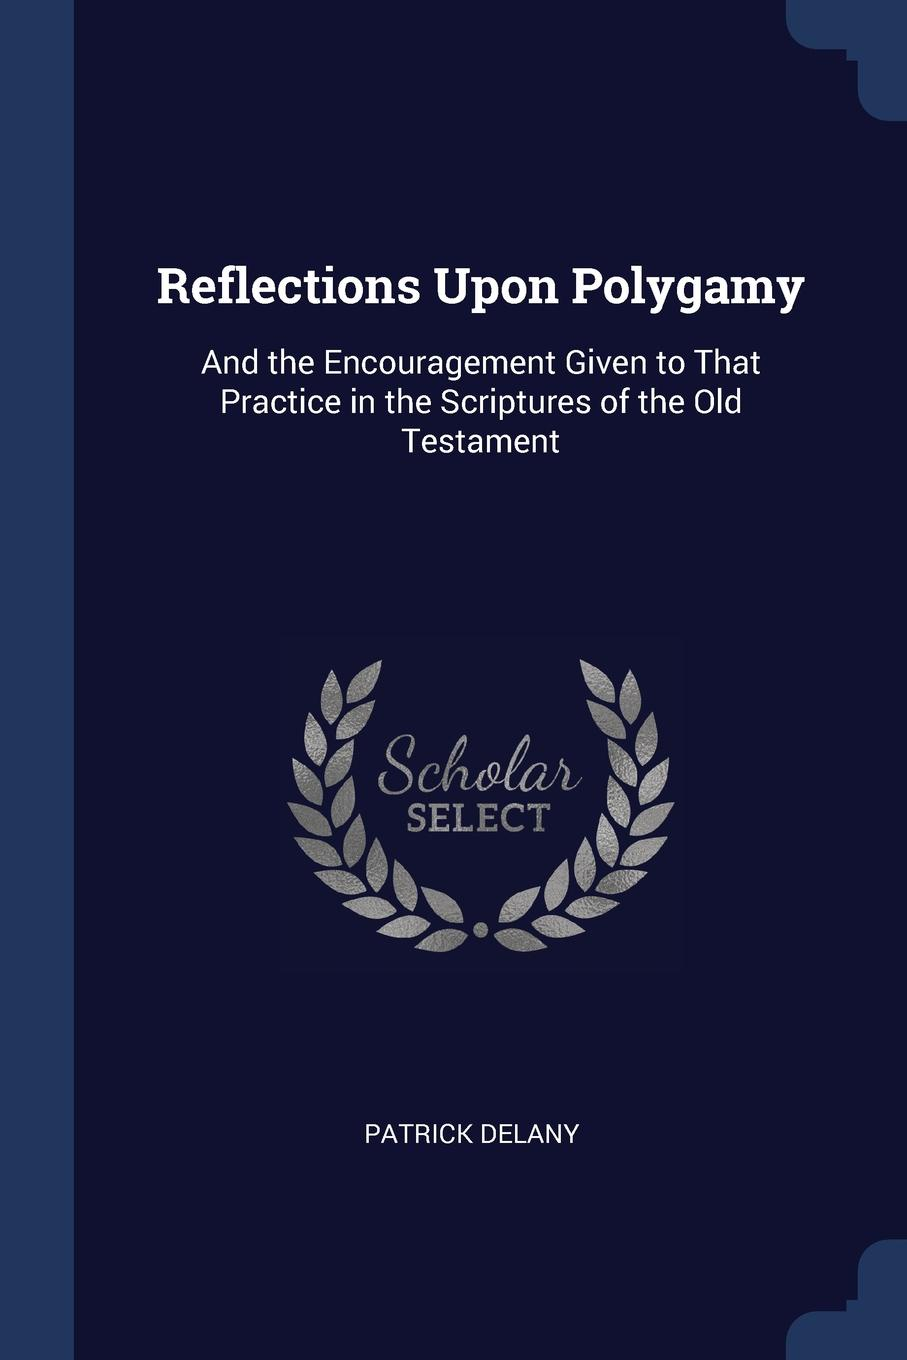 Reflections Upon Polygamy. And the Encouragement Given to That Practice in the Scriptures of the Old Testament. Patrick Delany